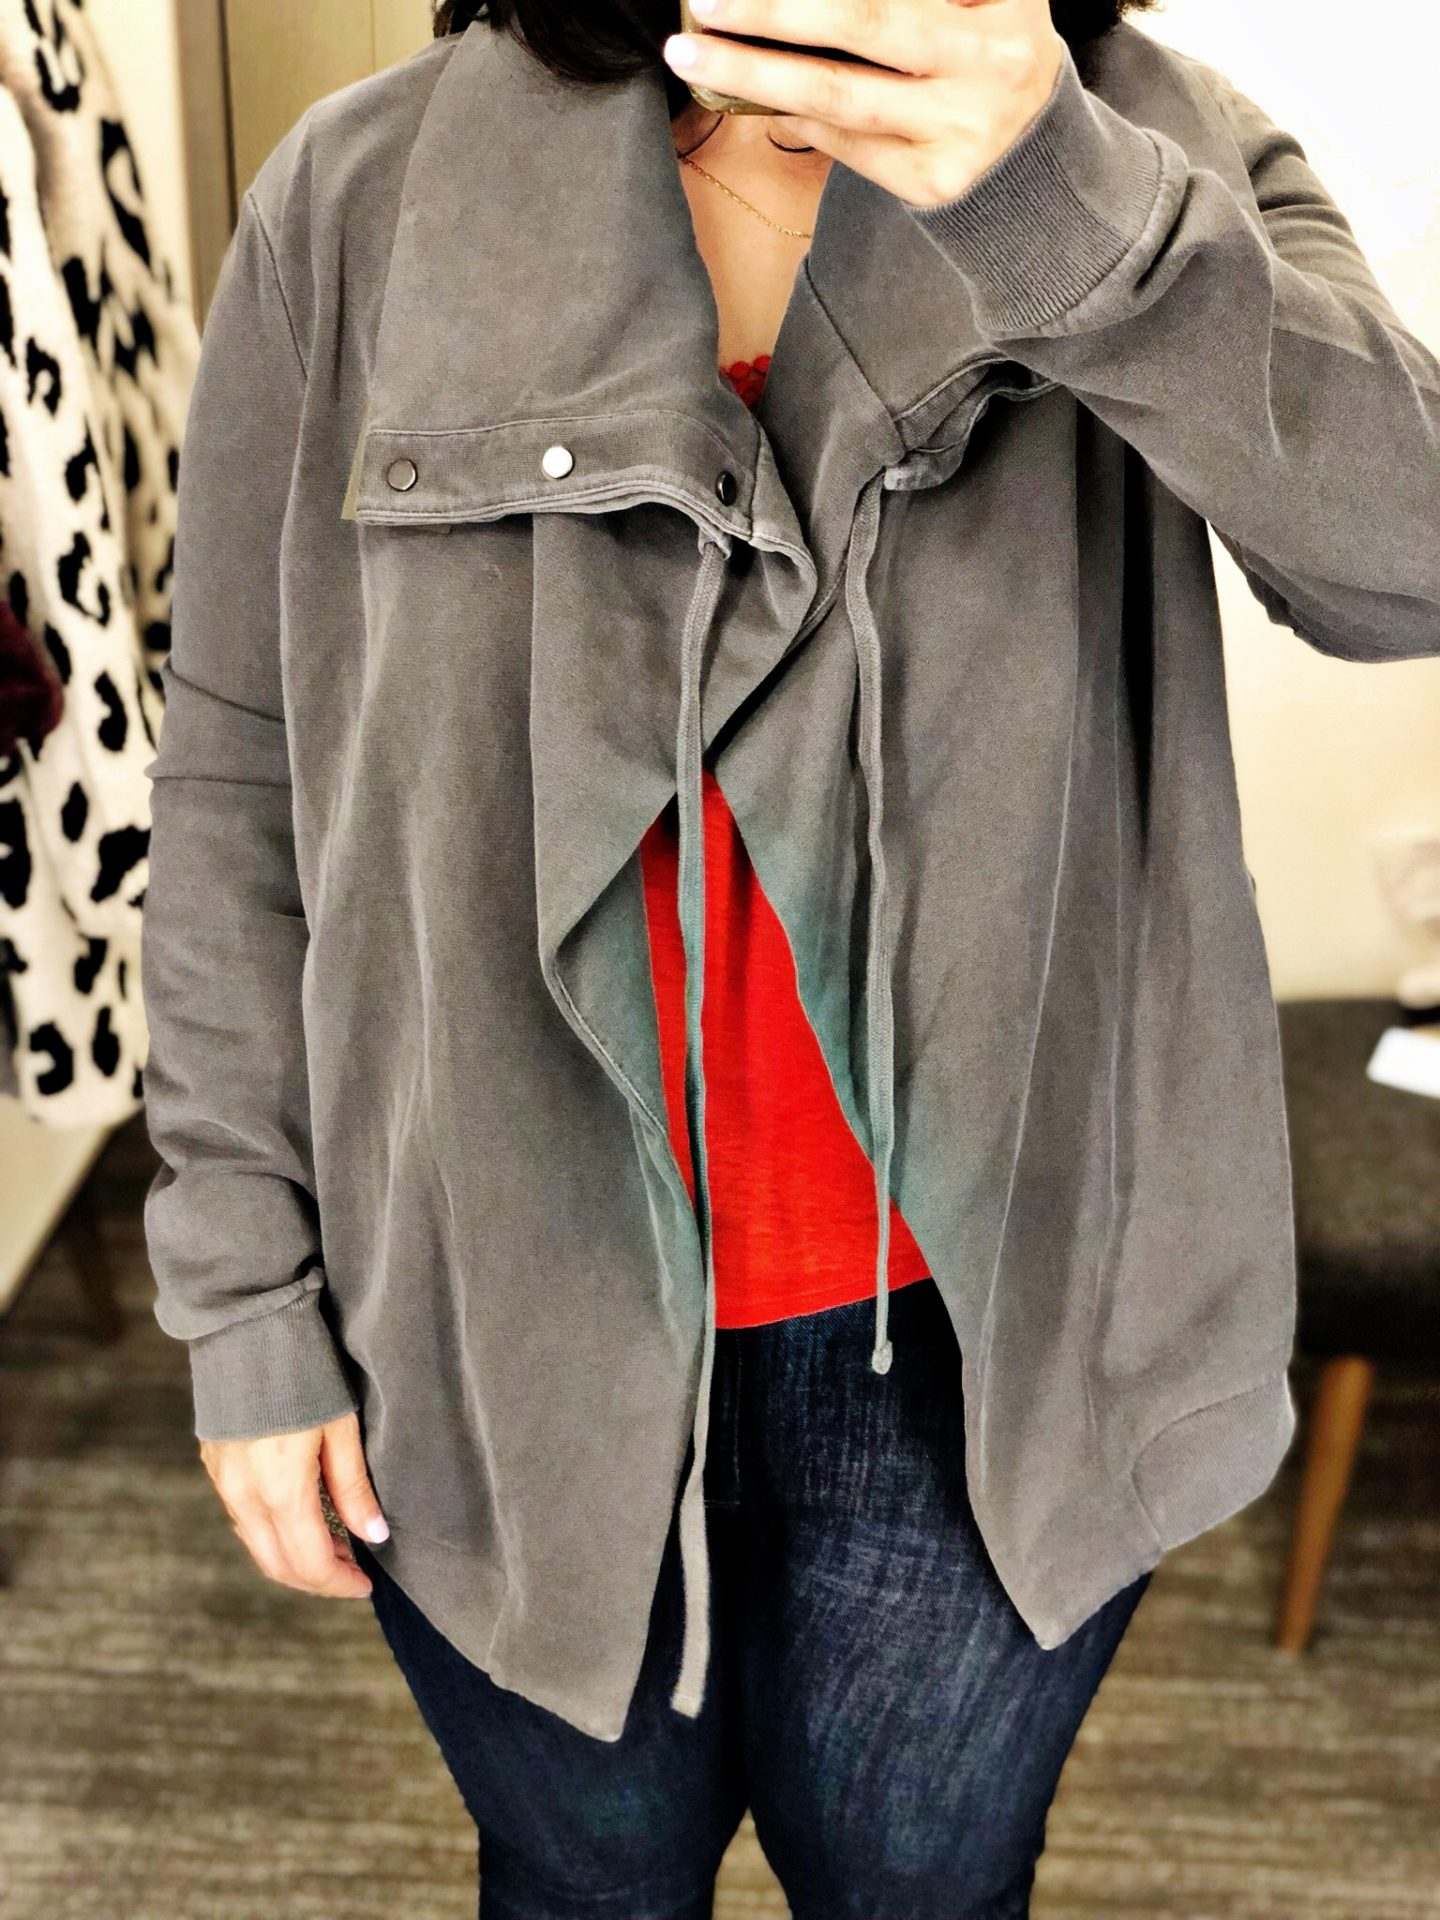 ALLSAINTS Brooke Knit Jacket | Anniversary Sale 2019 Dressing Room Selfies